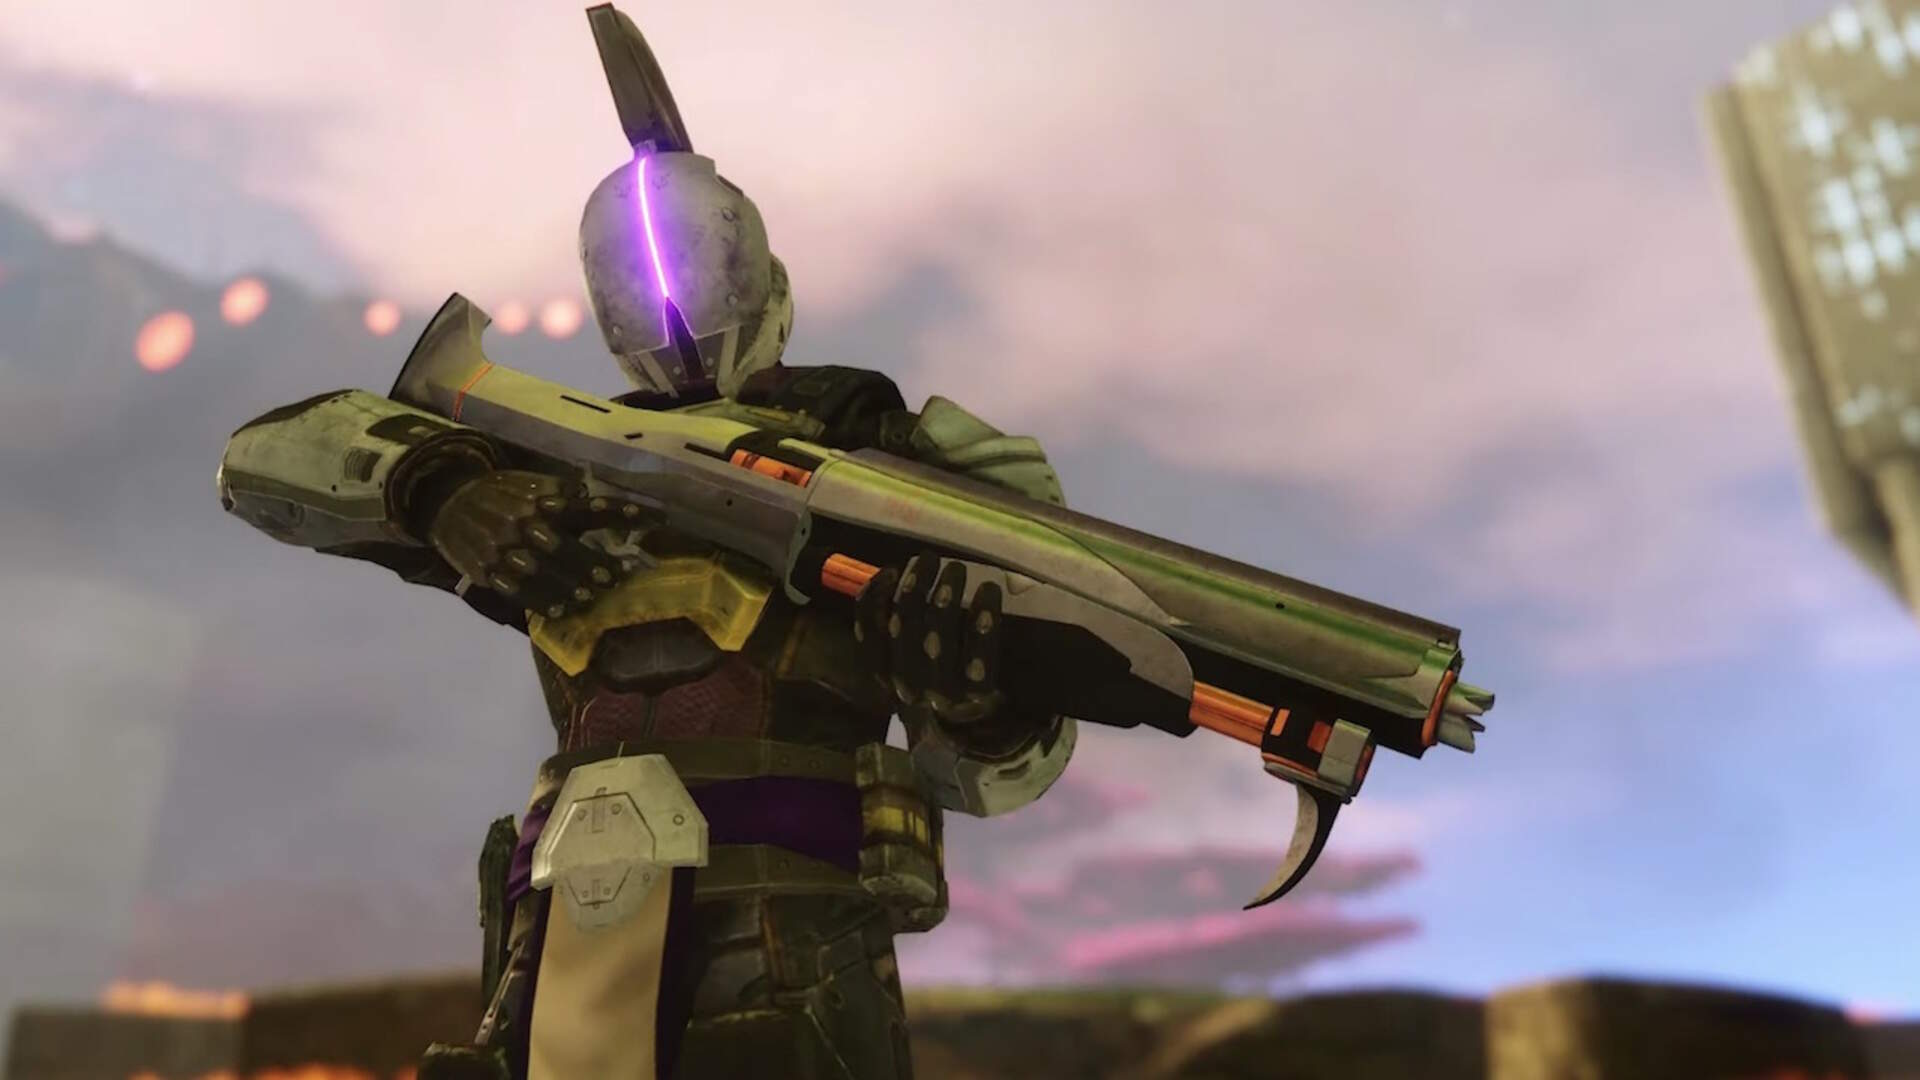 You've Only Got a Few Days Left to Attend Your Own Funeral in Destiny 2